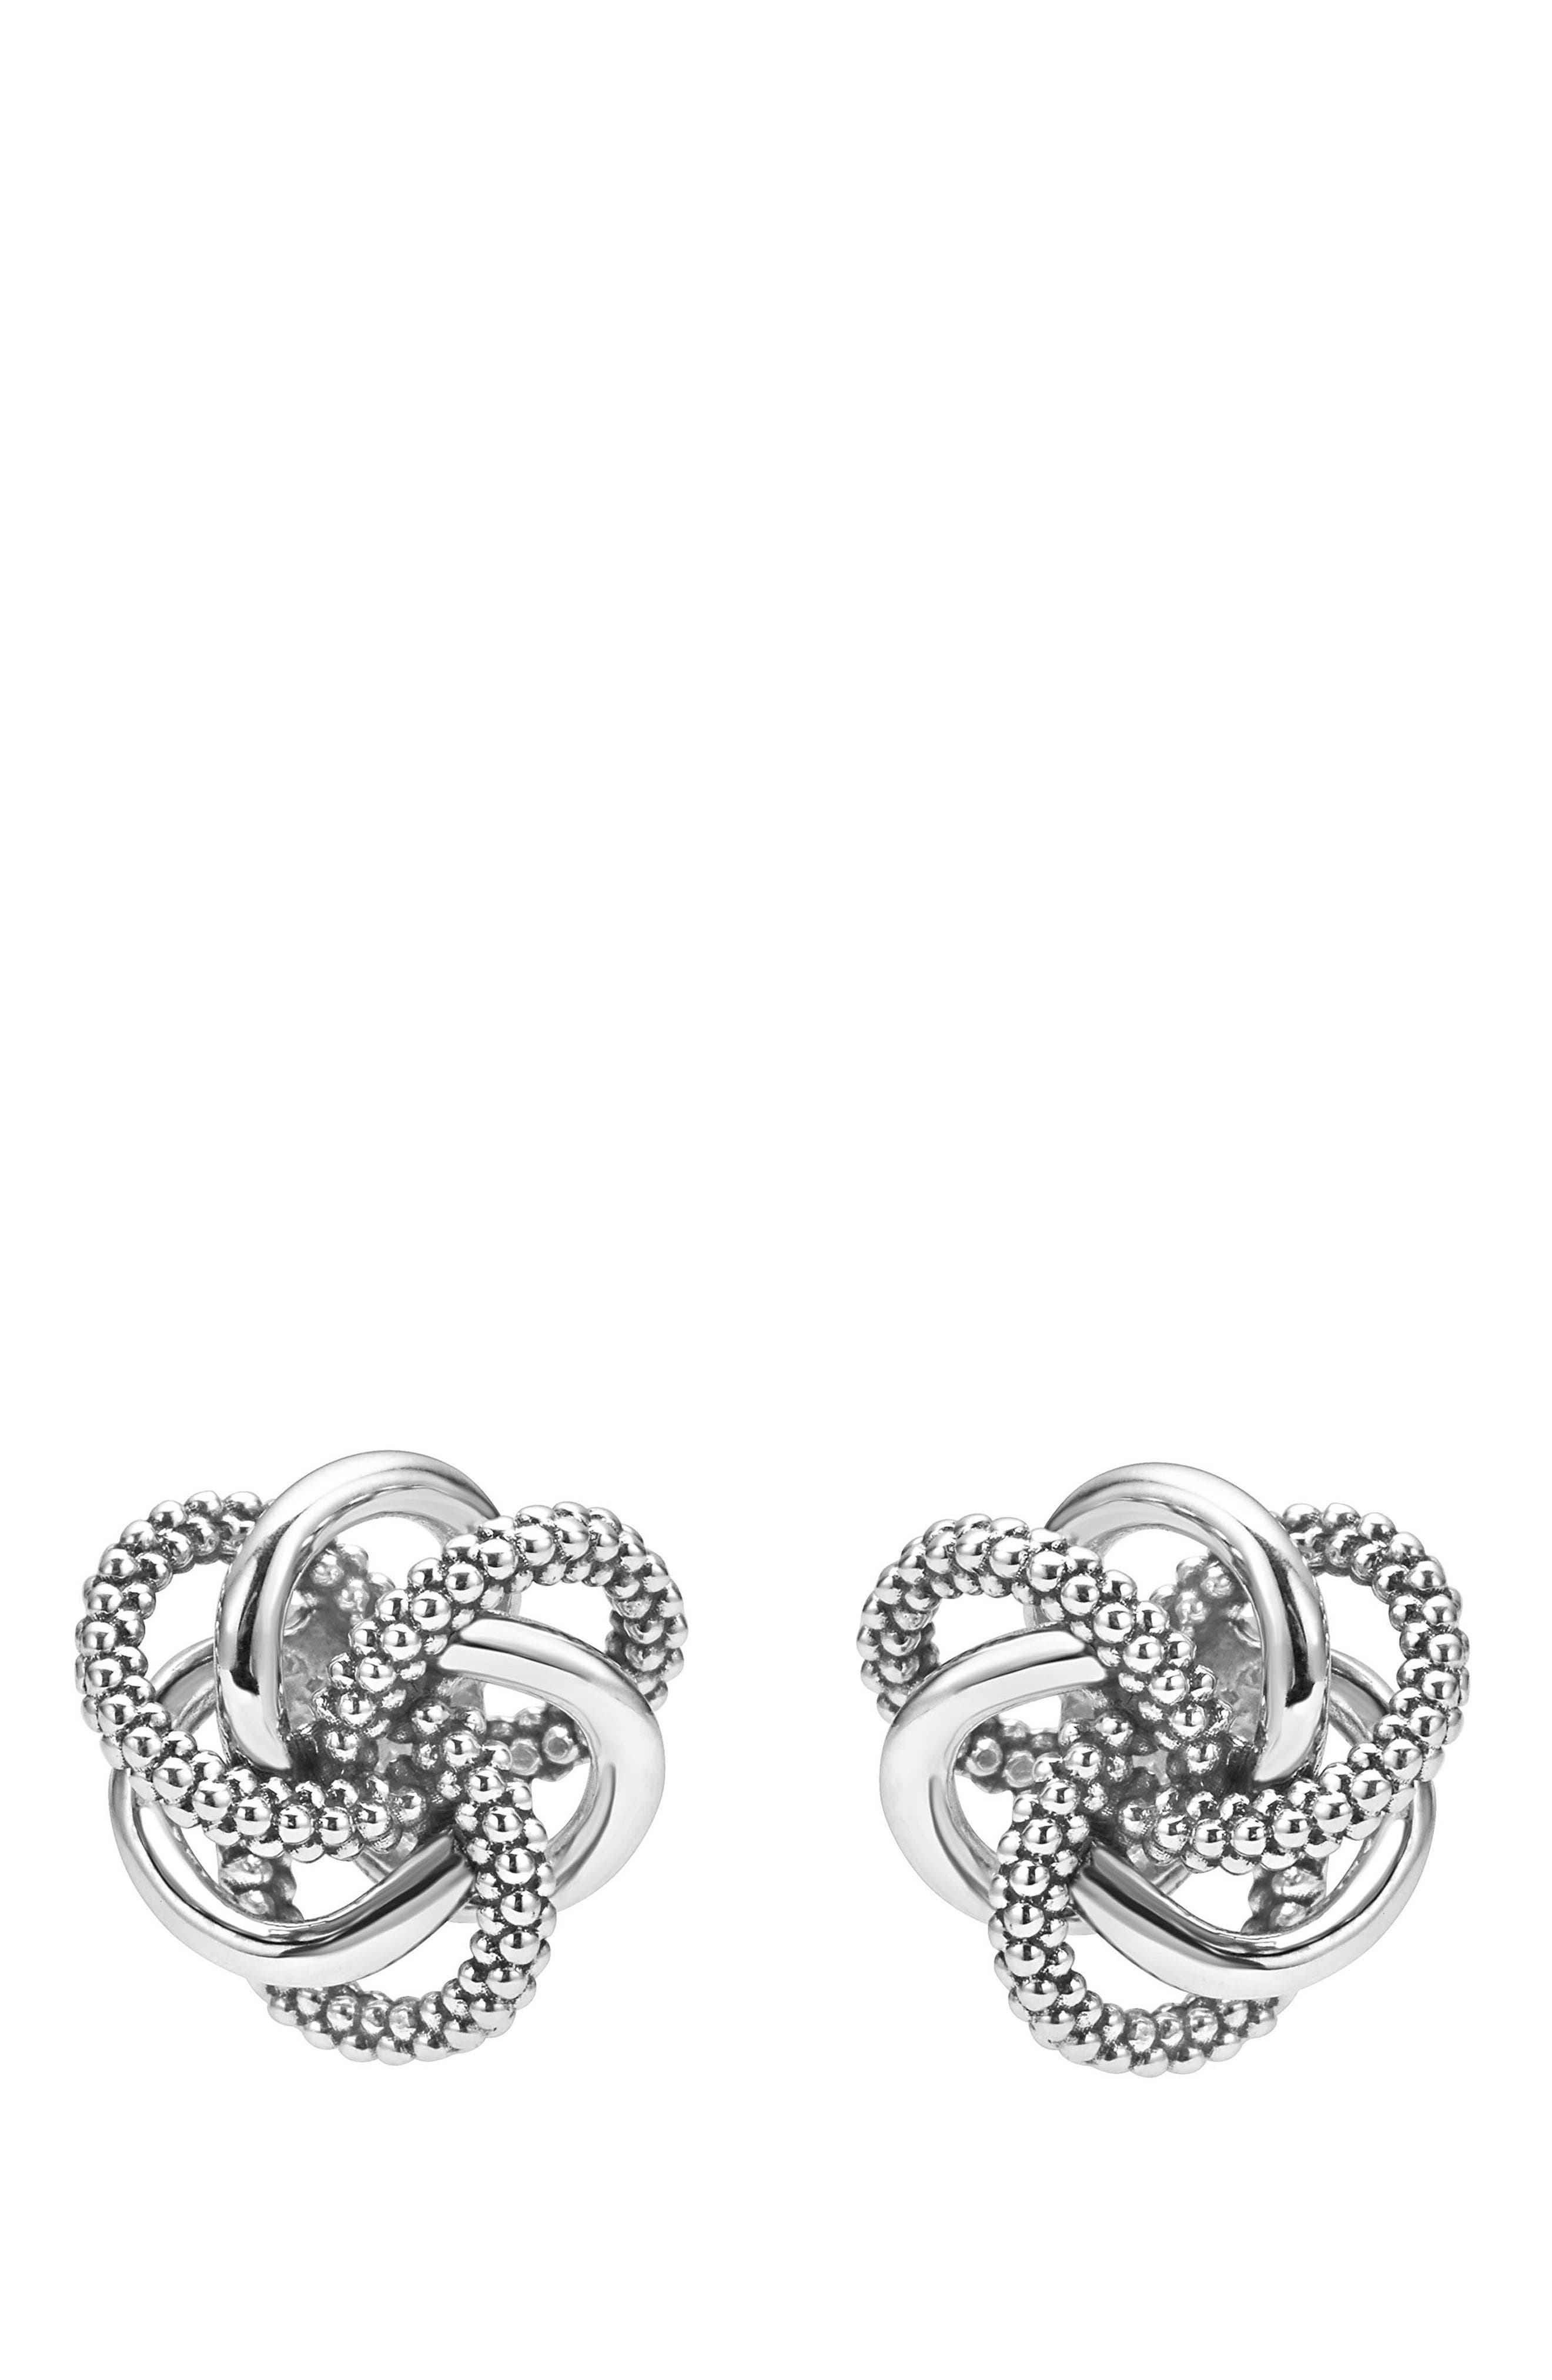 LAGOS 'Love Knot' Sterling Silver Stud Earrings, Main, color, STERLING SILVER